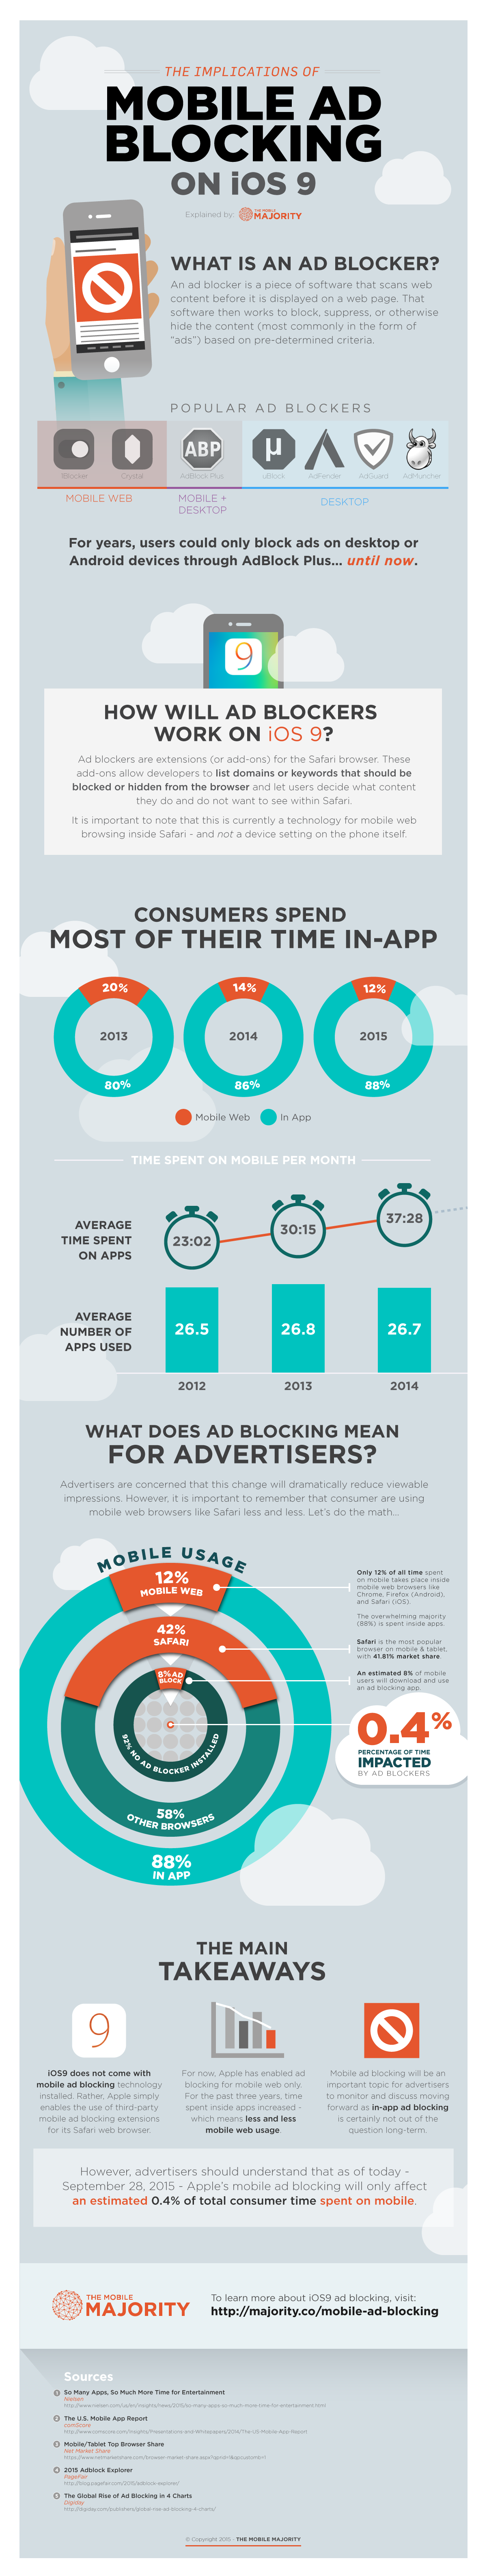 iOS9-Mobile-Ad-Blocking-The-Mobile-Majority